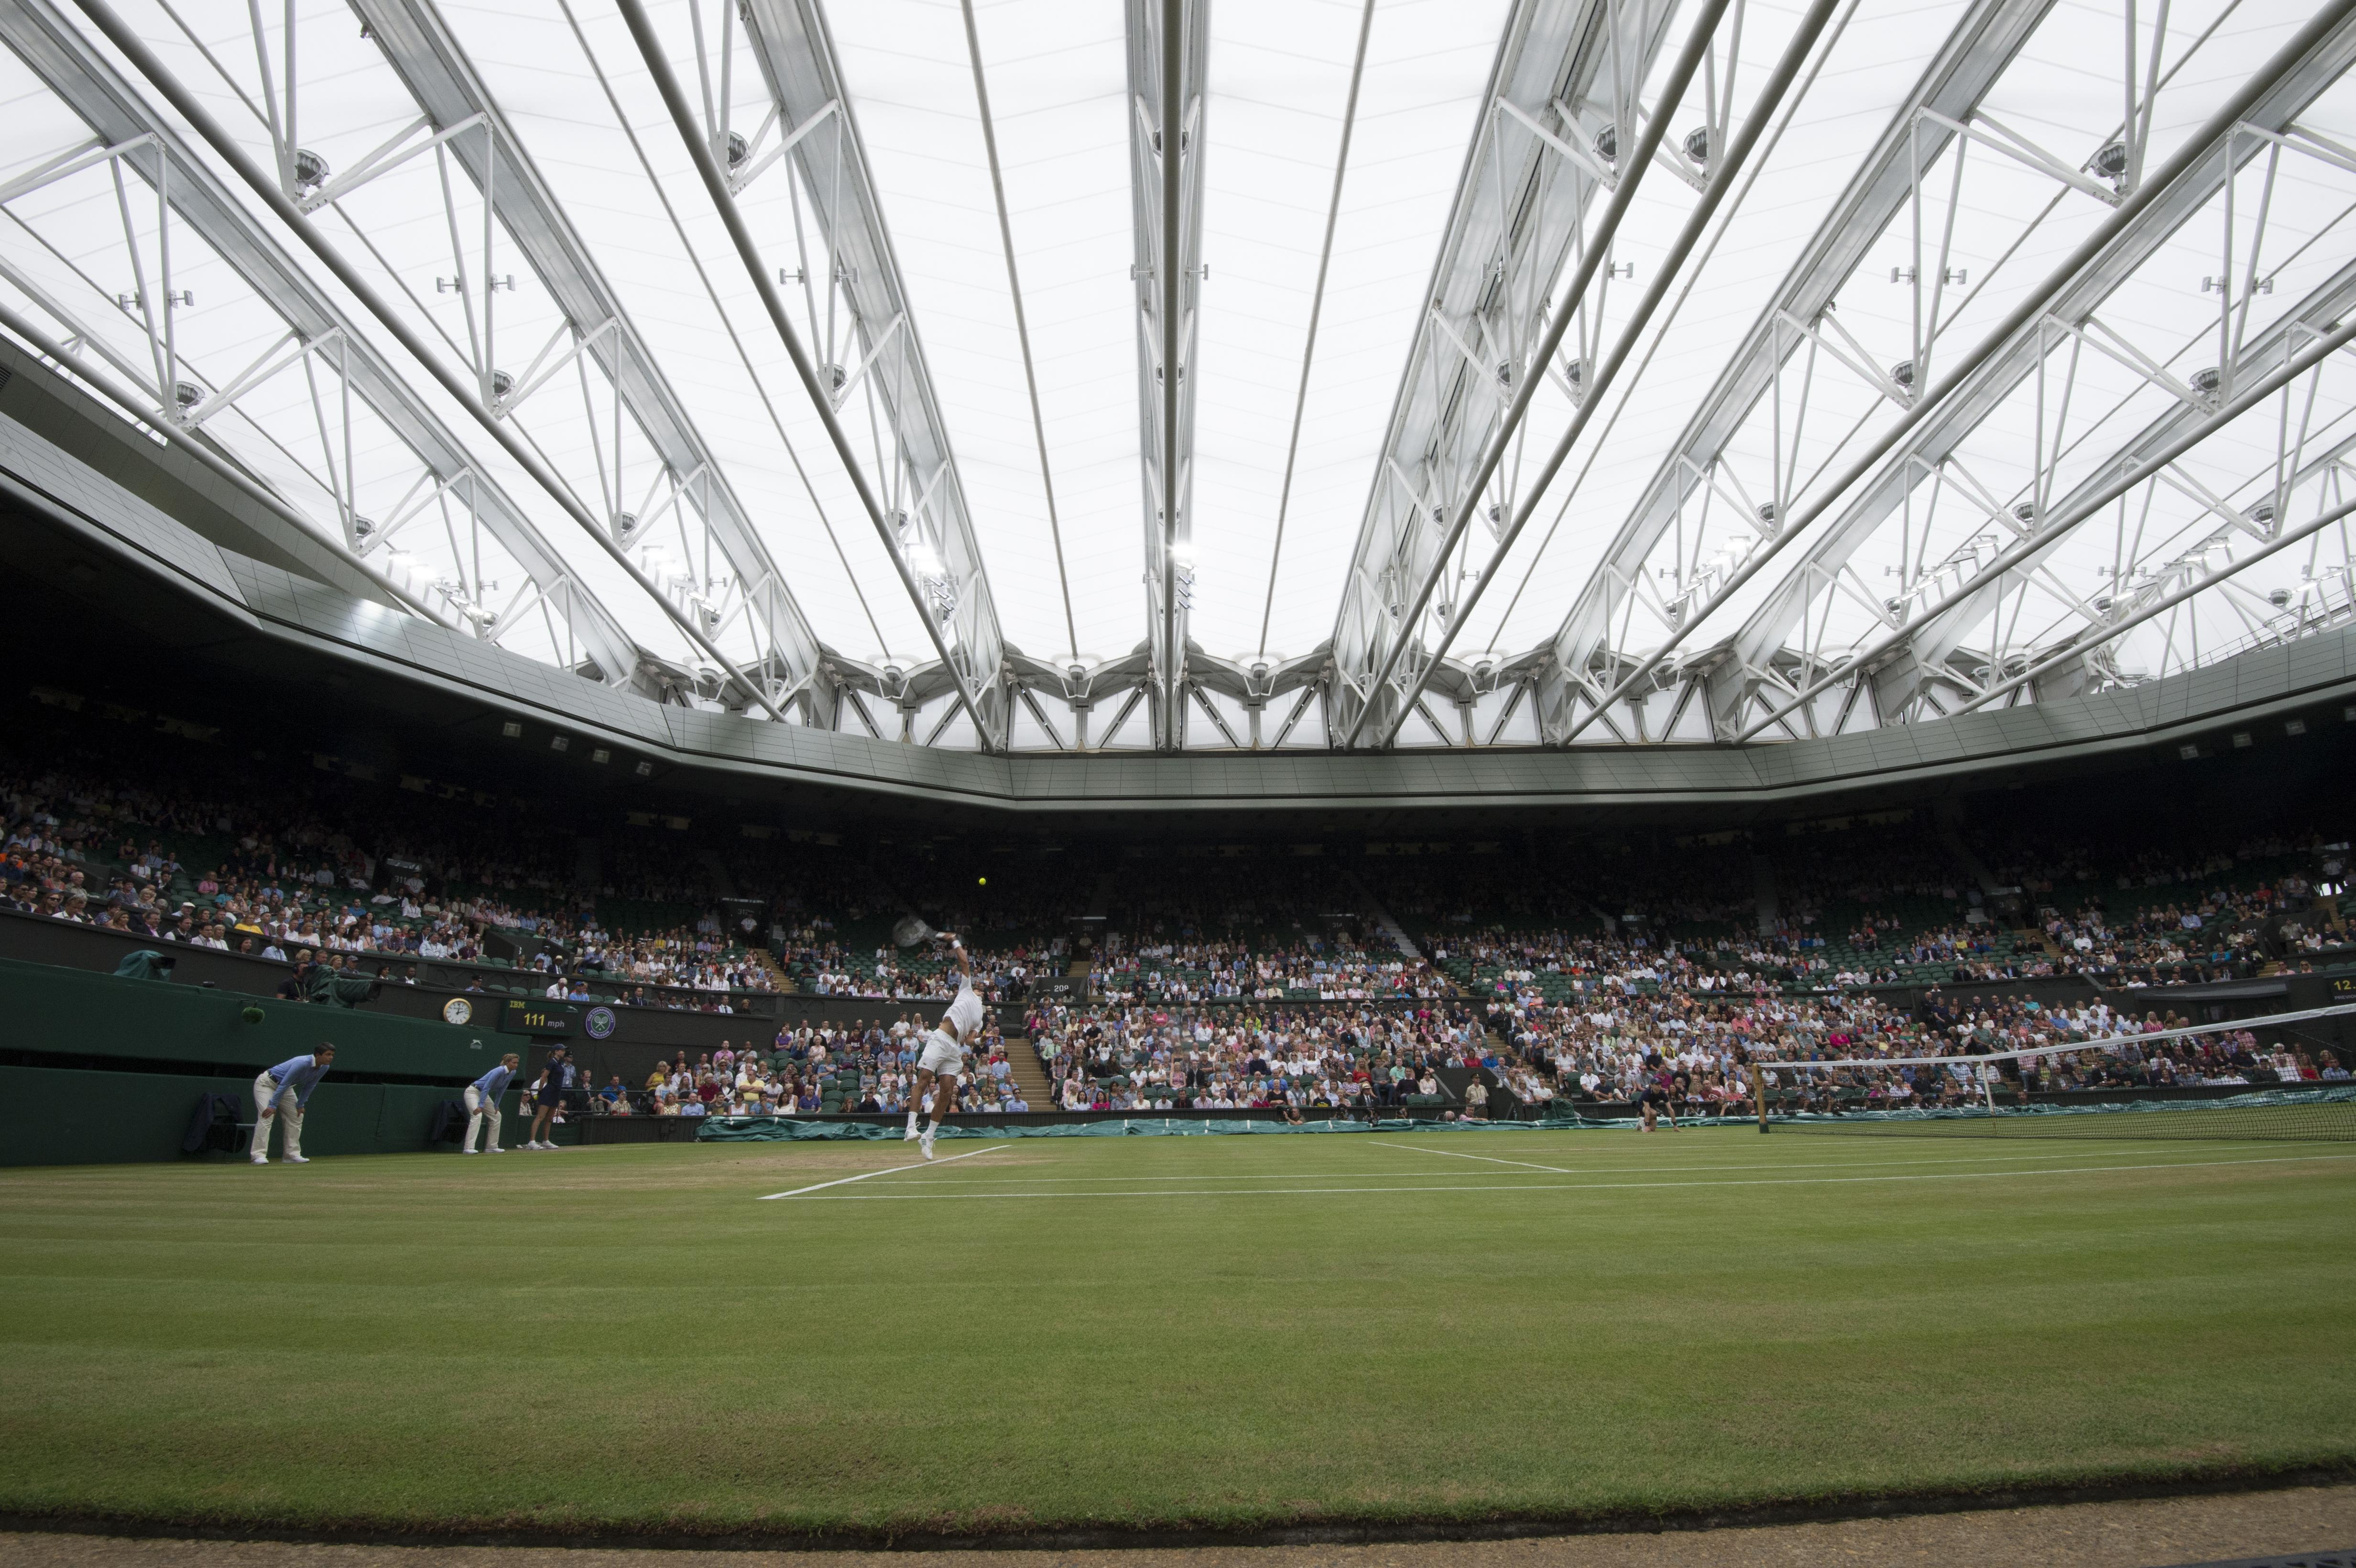 Wimbledon 2018 live streaming FREE How to watch all the